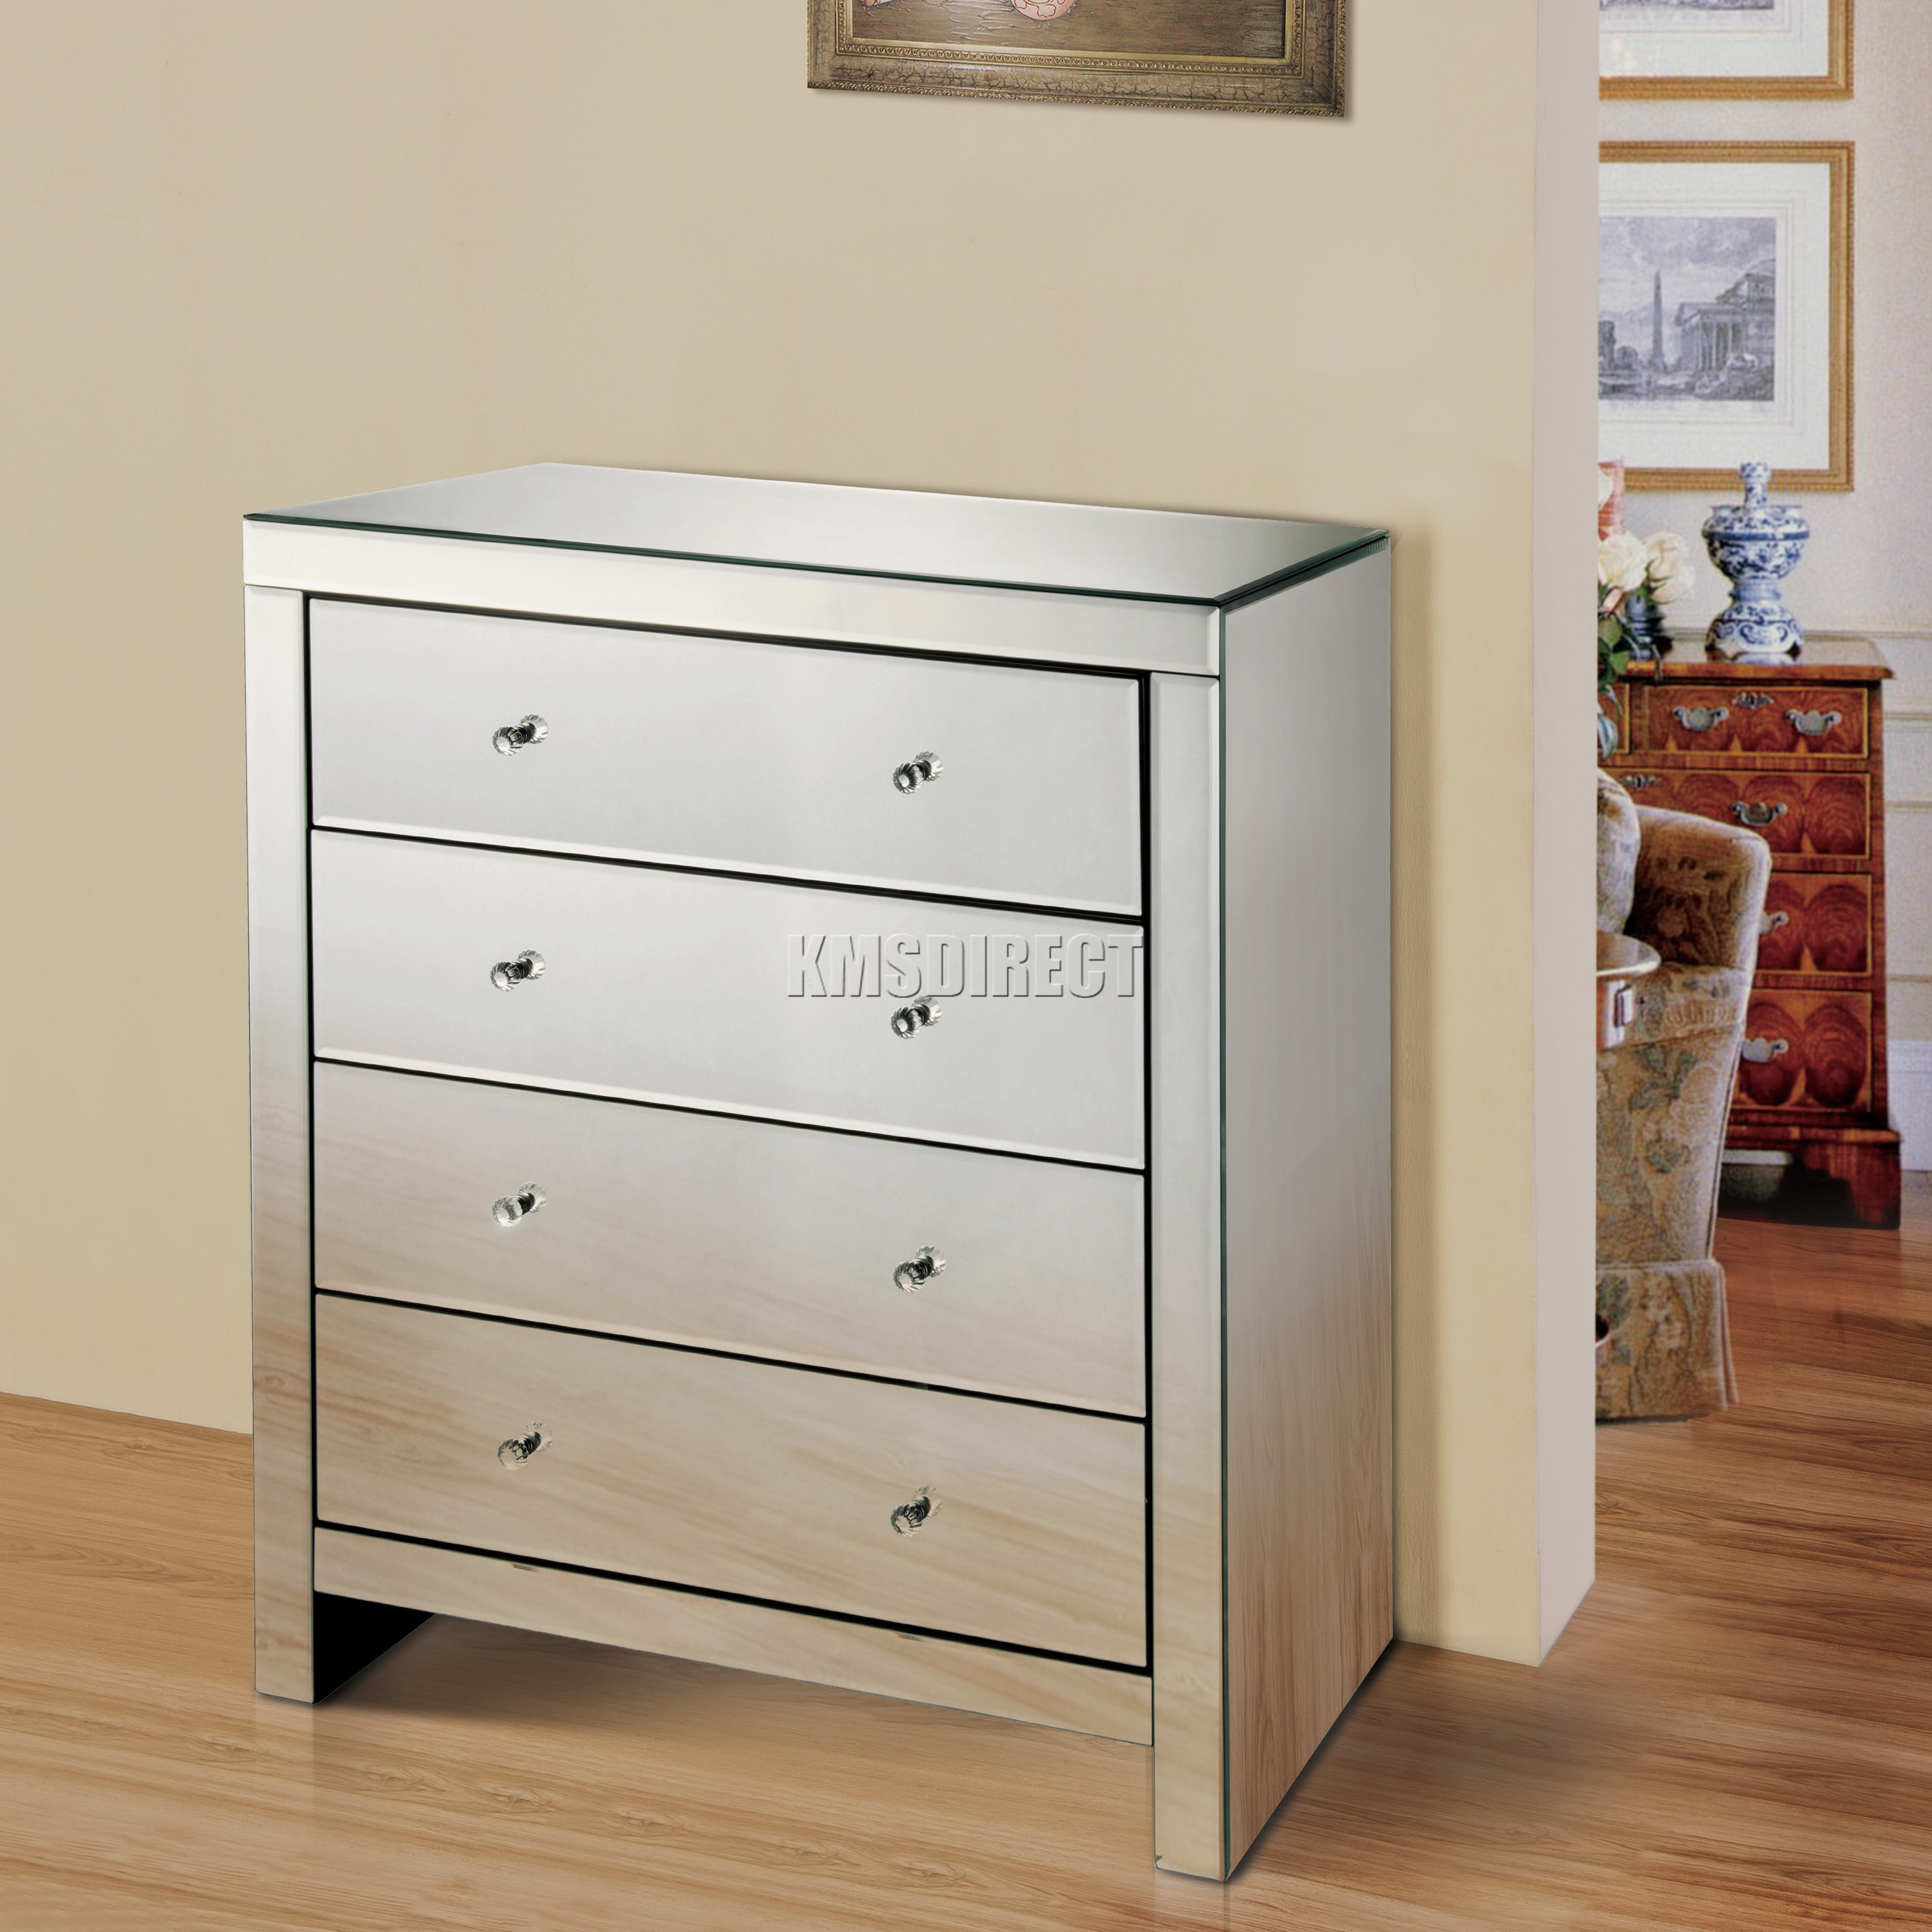 Beautiful Bedroom Furniture Glass With Drawer Chest Cabinet Table Inspiration Decorating